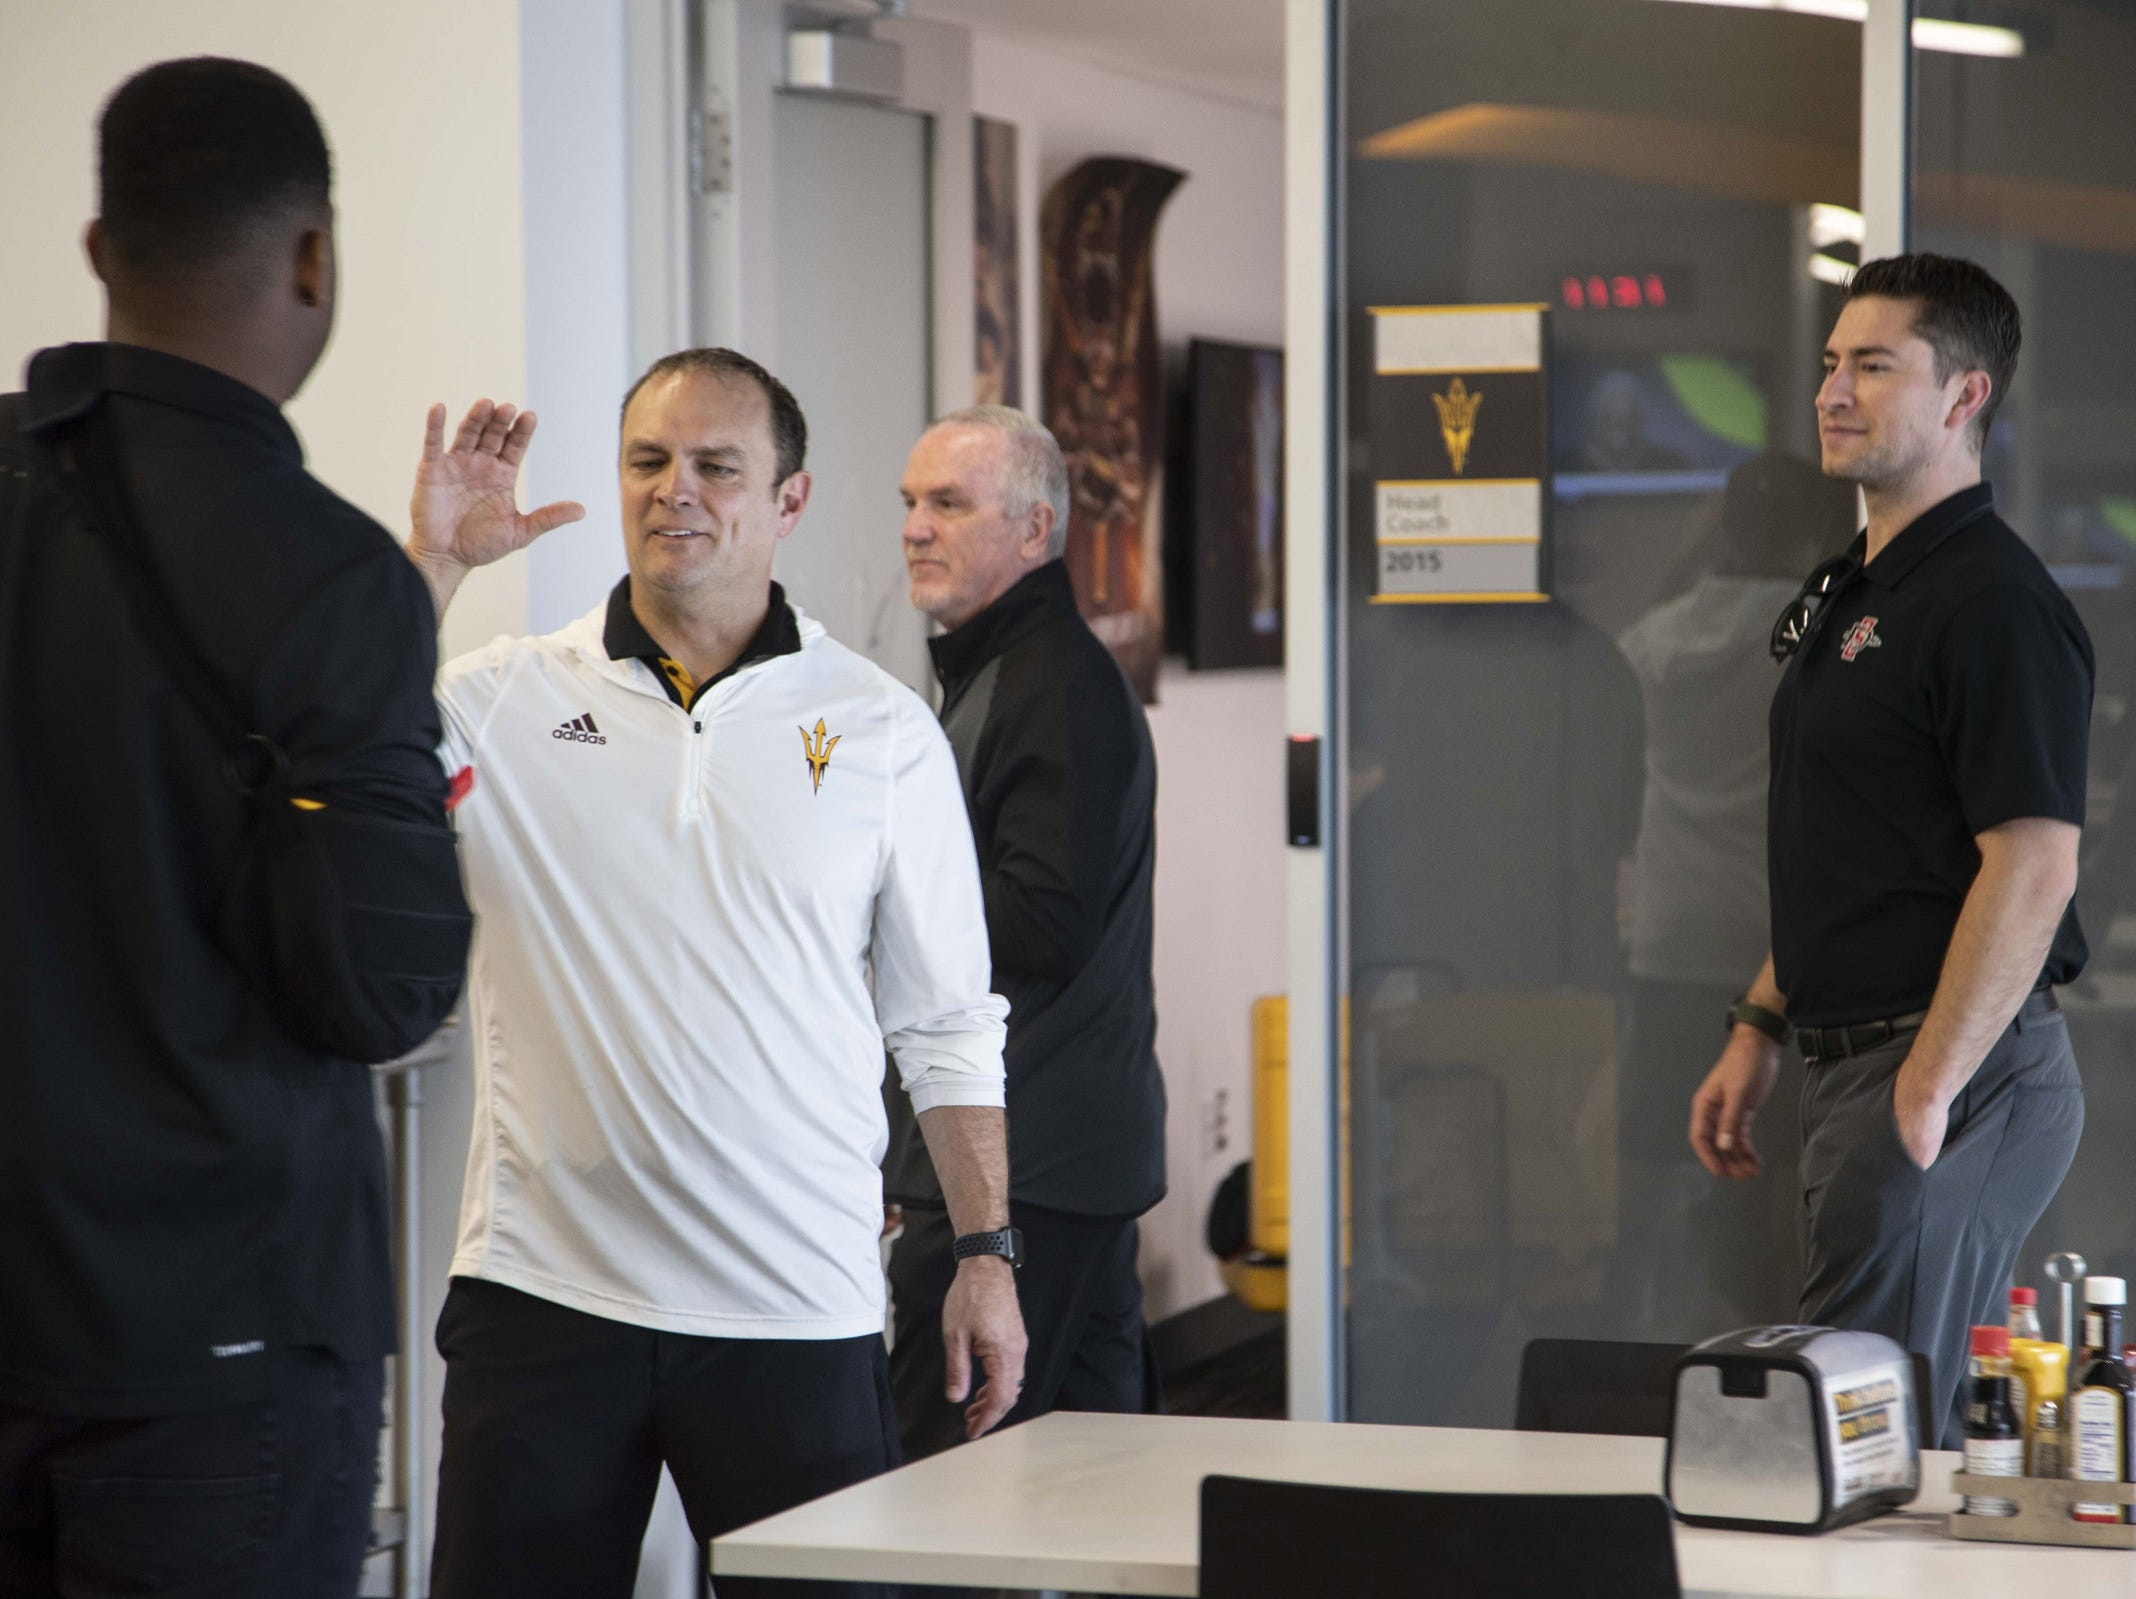 Defensive coordinator Danny Gonzales gives hi five to players during the ASU Spring Football media day at ASU Tempe campus.